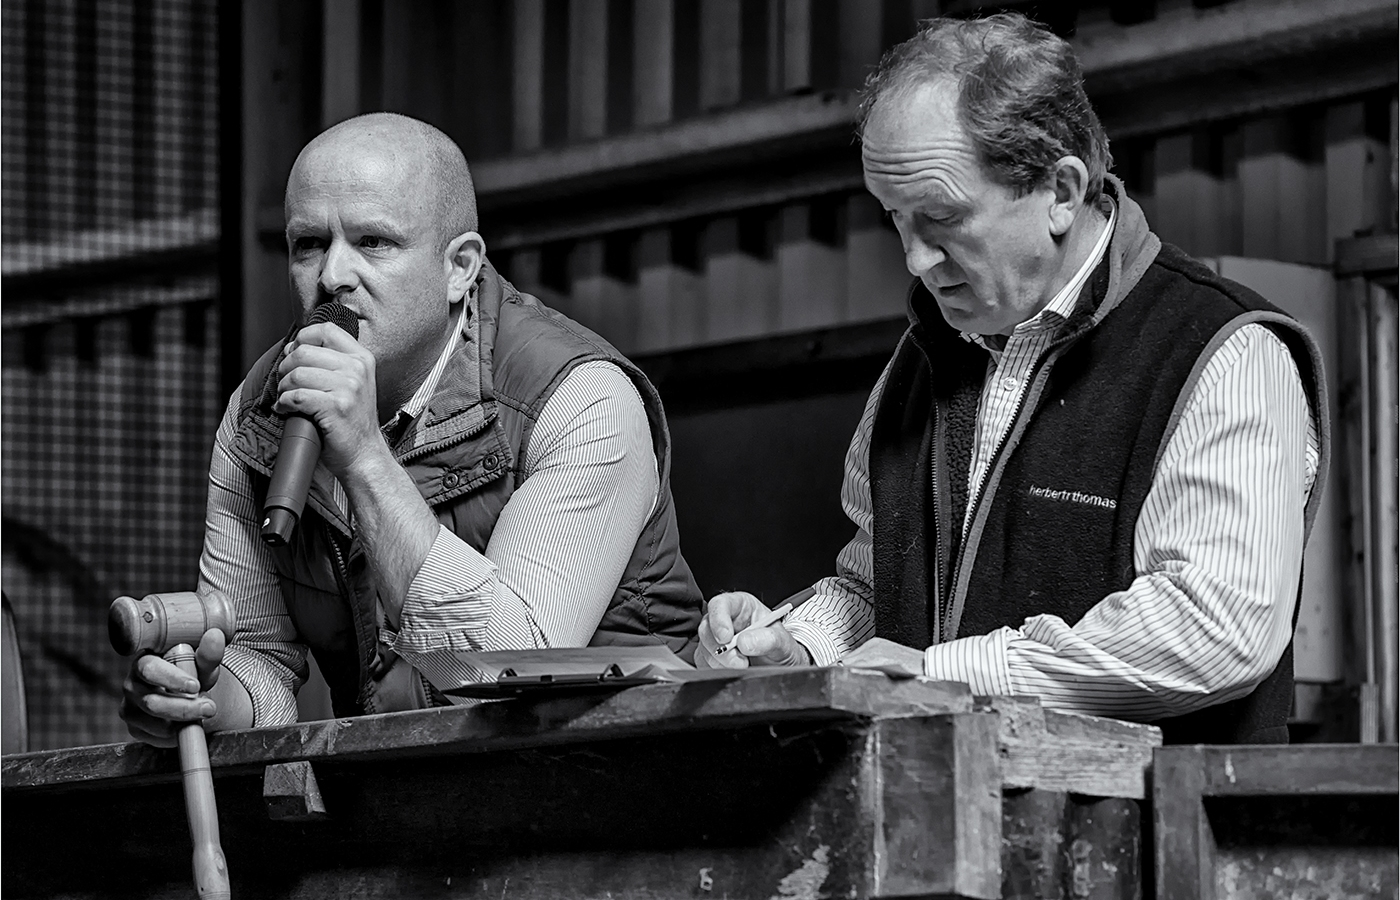 15. The Auctioneers at Penderyn Sheep Market